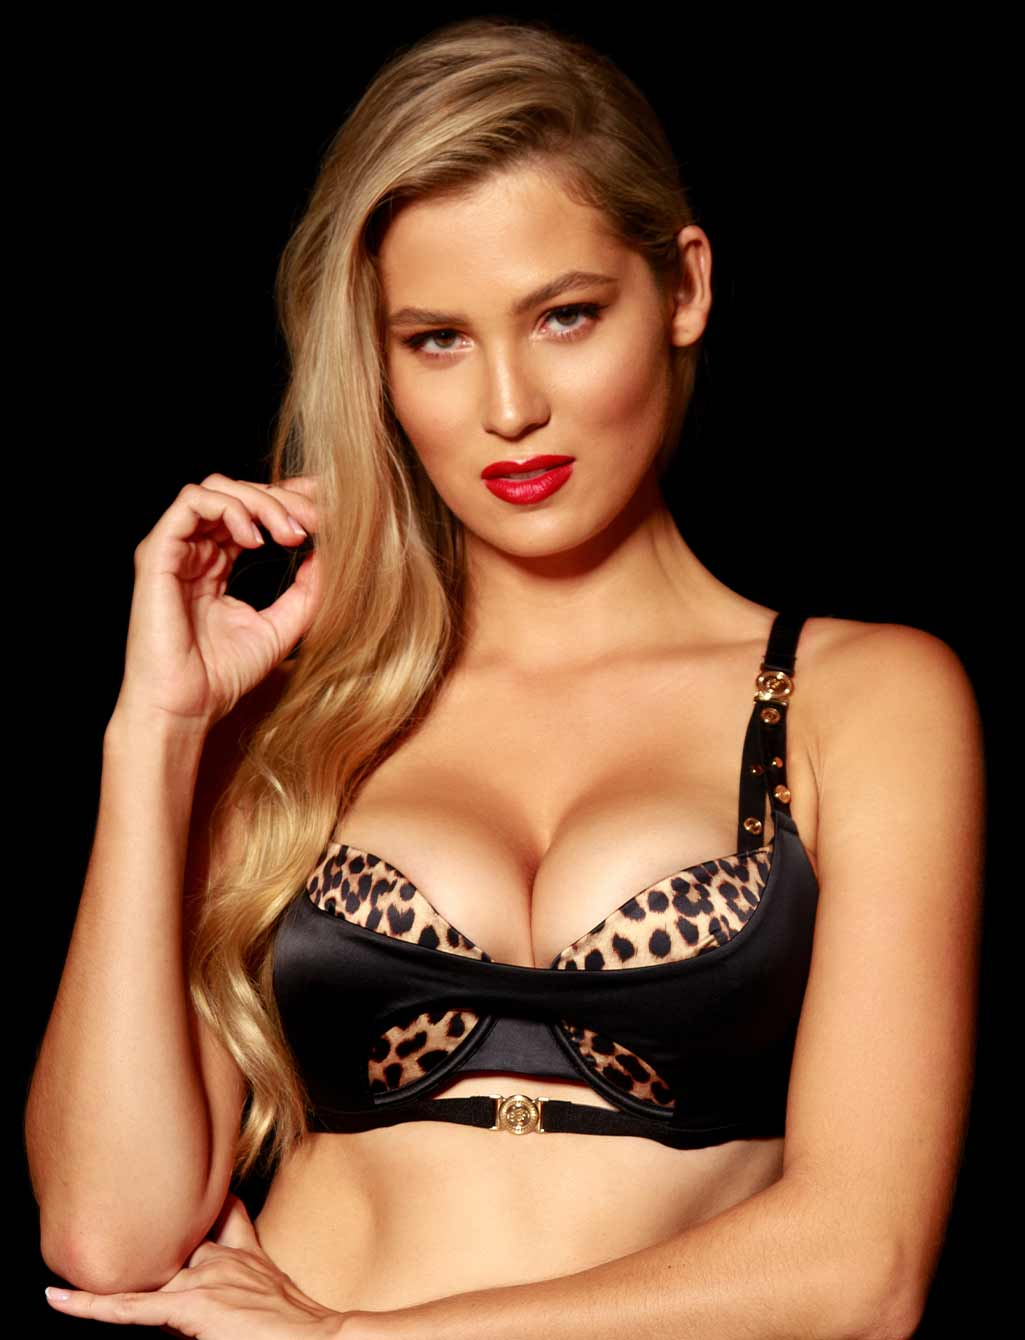 Donatella Leopard Push Up Bra | Shop  Lingerie Honey Birdette